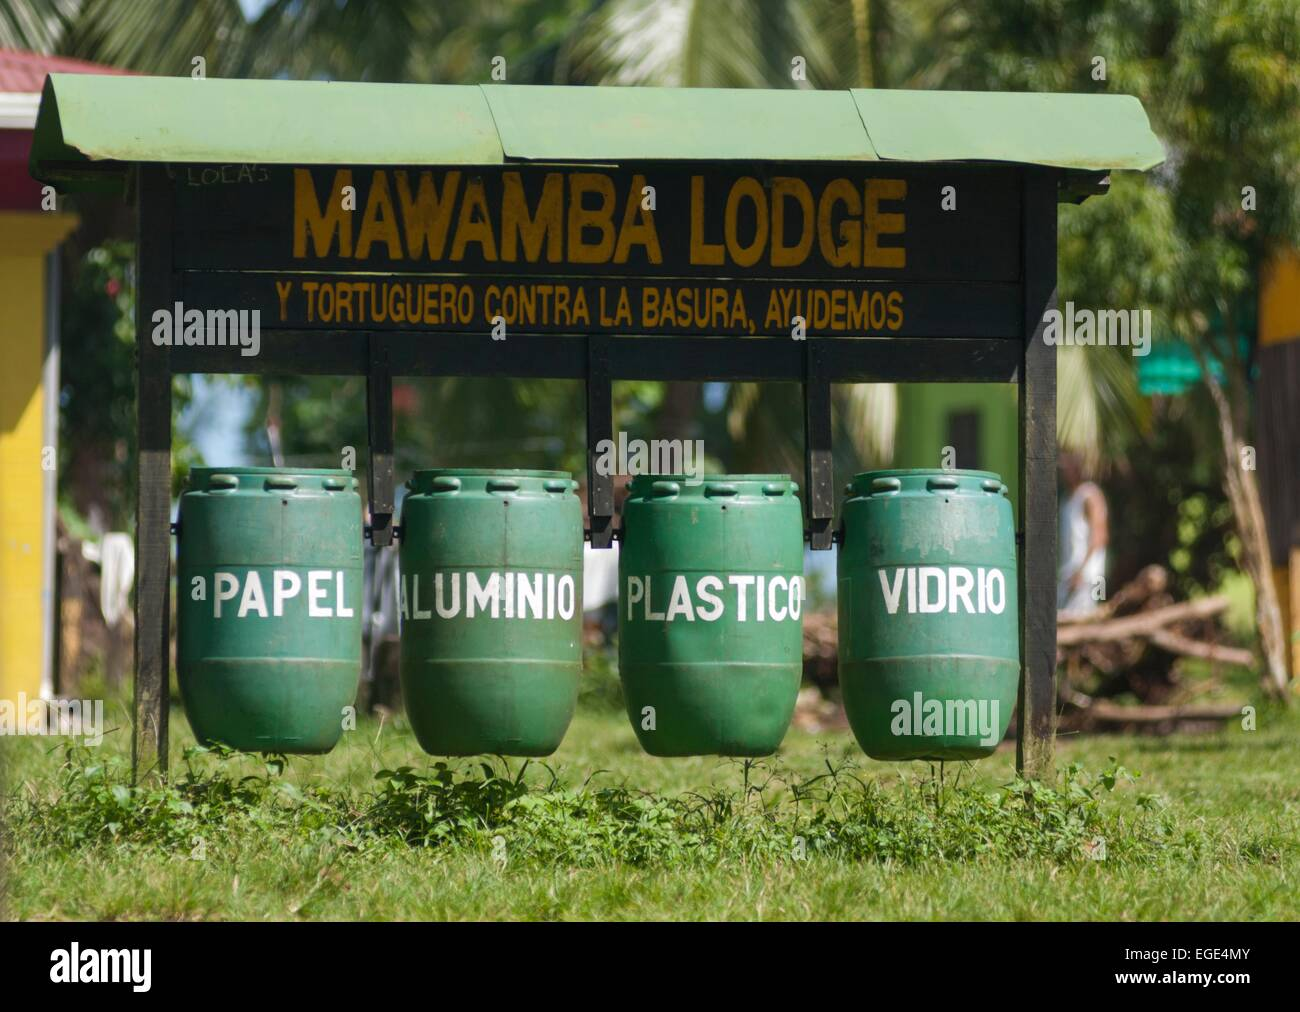 Costa Rica. National park of Tortuguero, Mawamba lodge, recycling trash cans - Stock Image